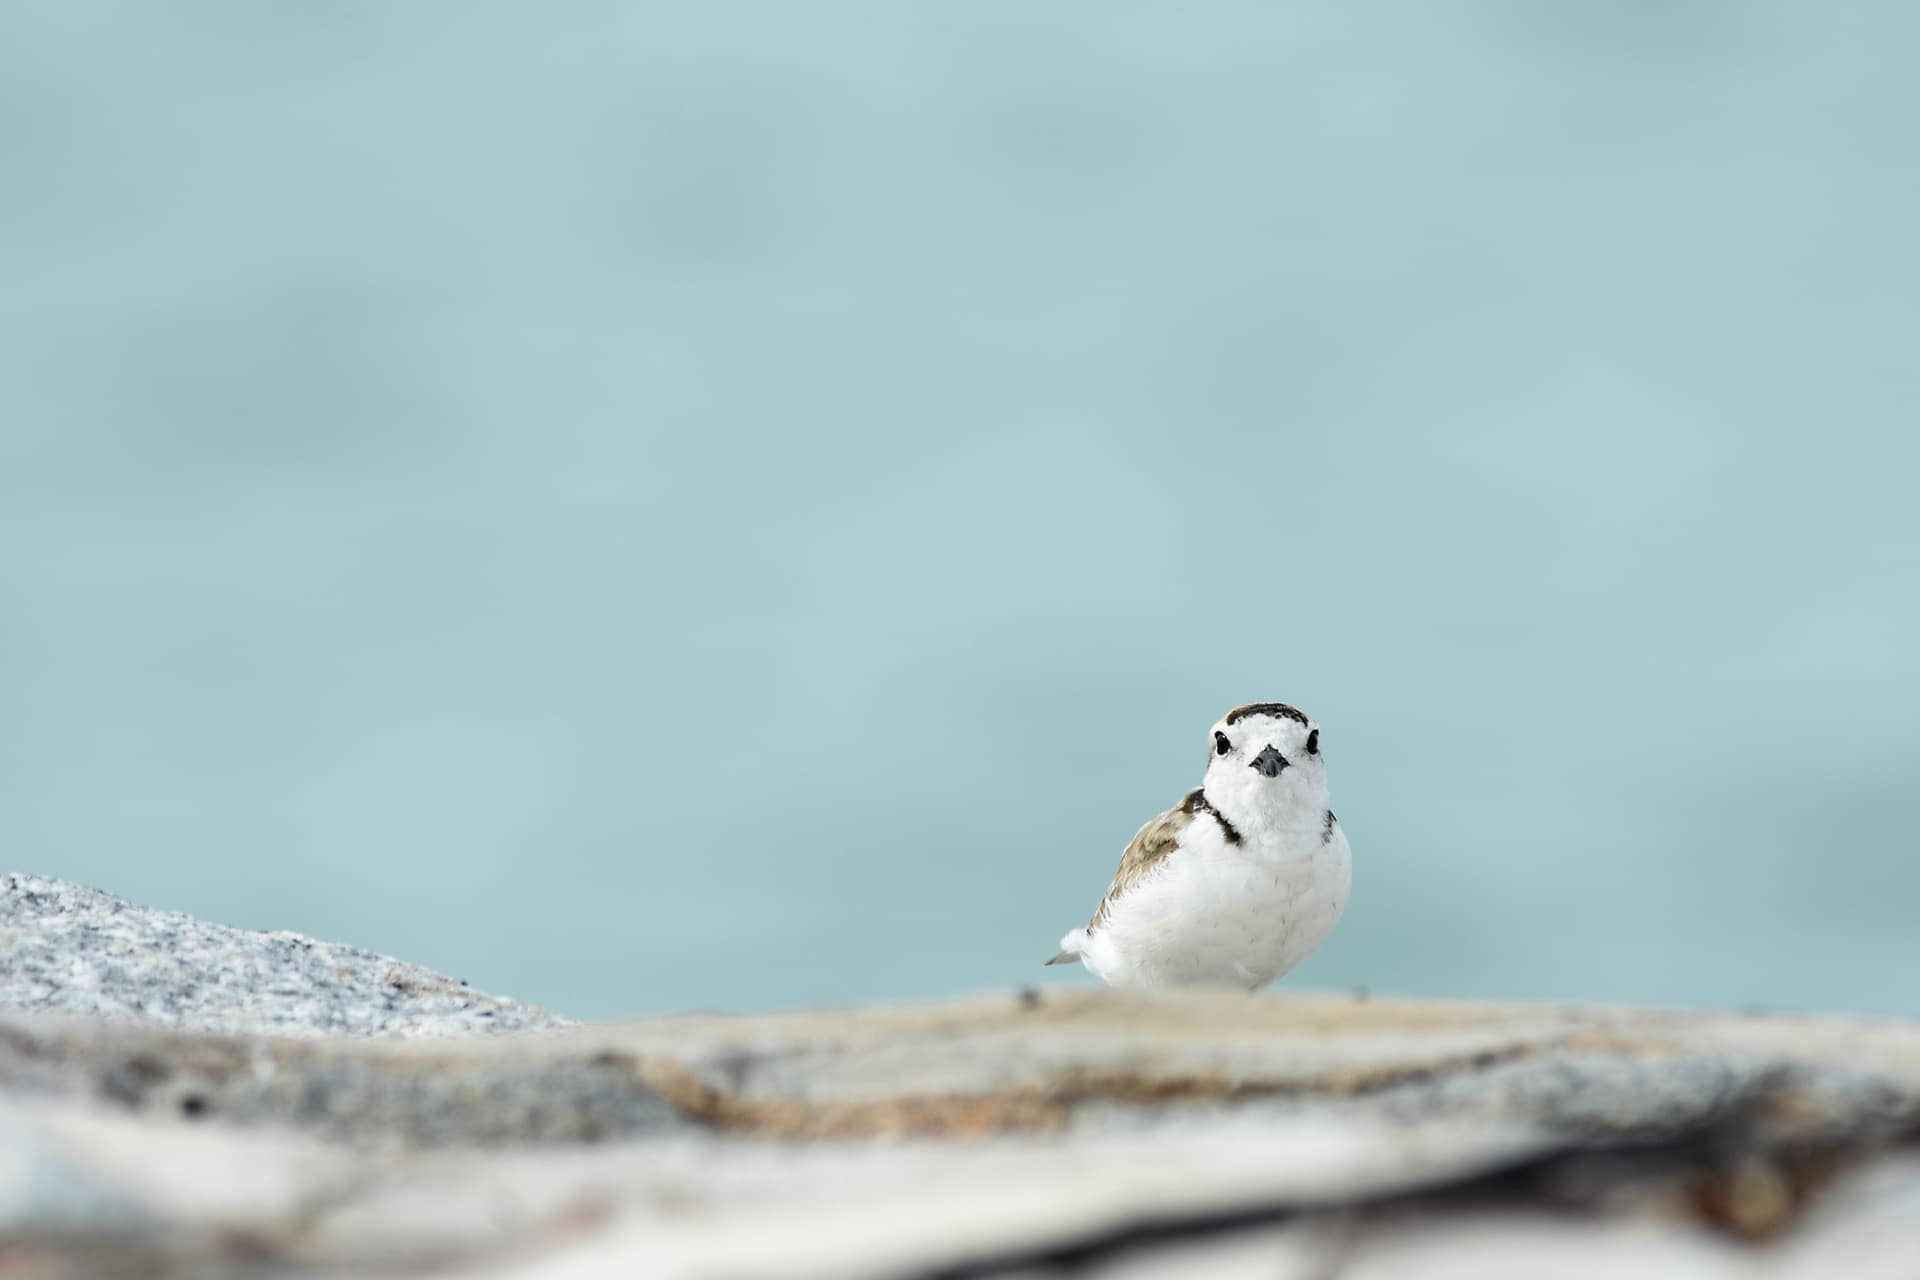 Piping Plover - Veganism & the Environment Guide - Your Daily Vegan